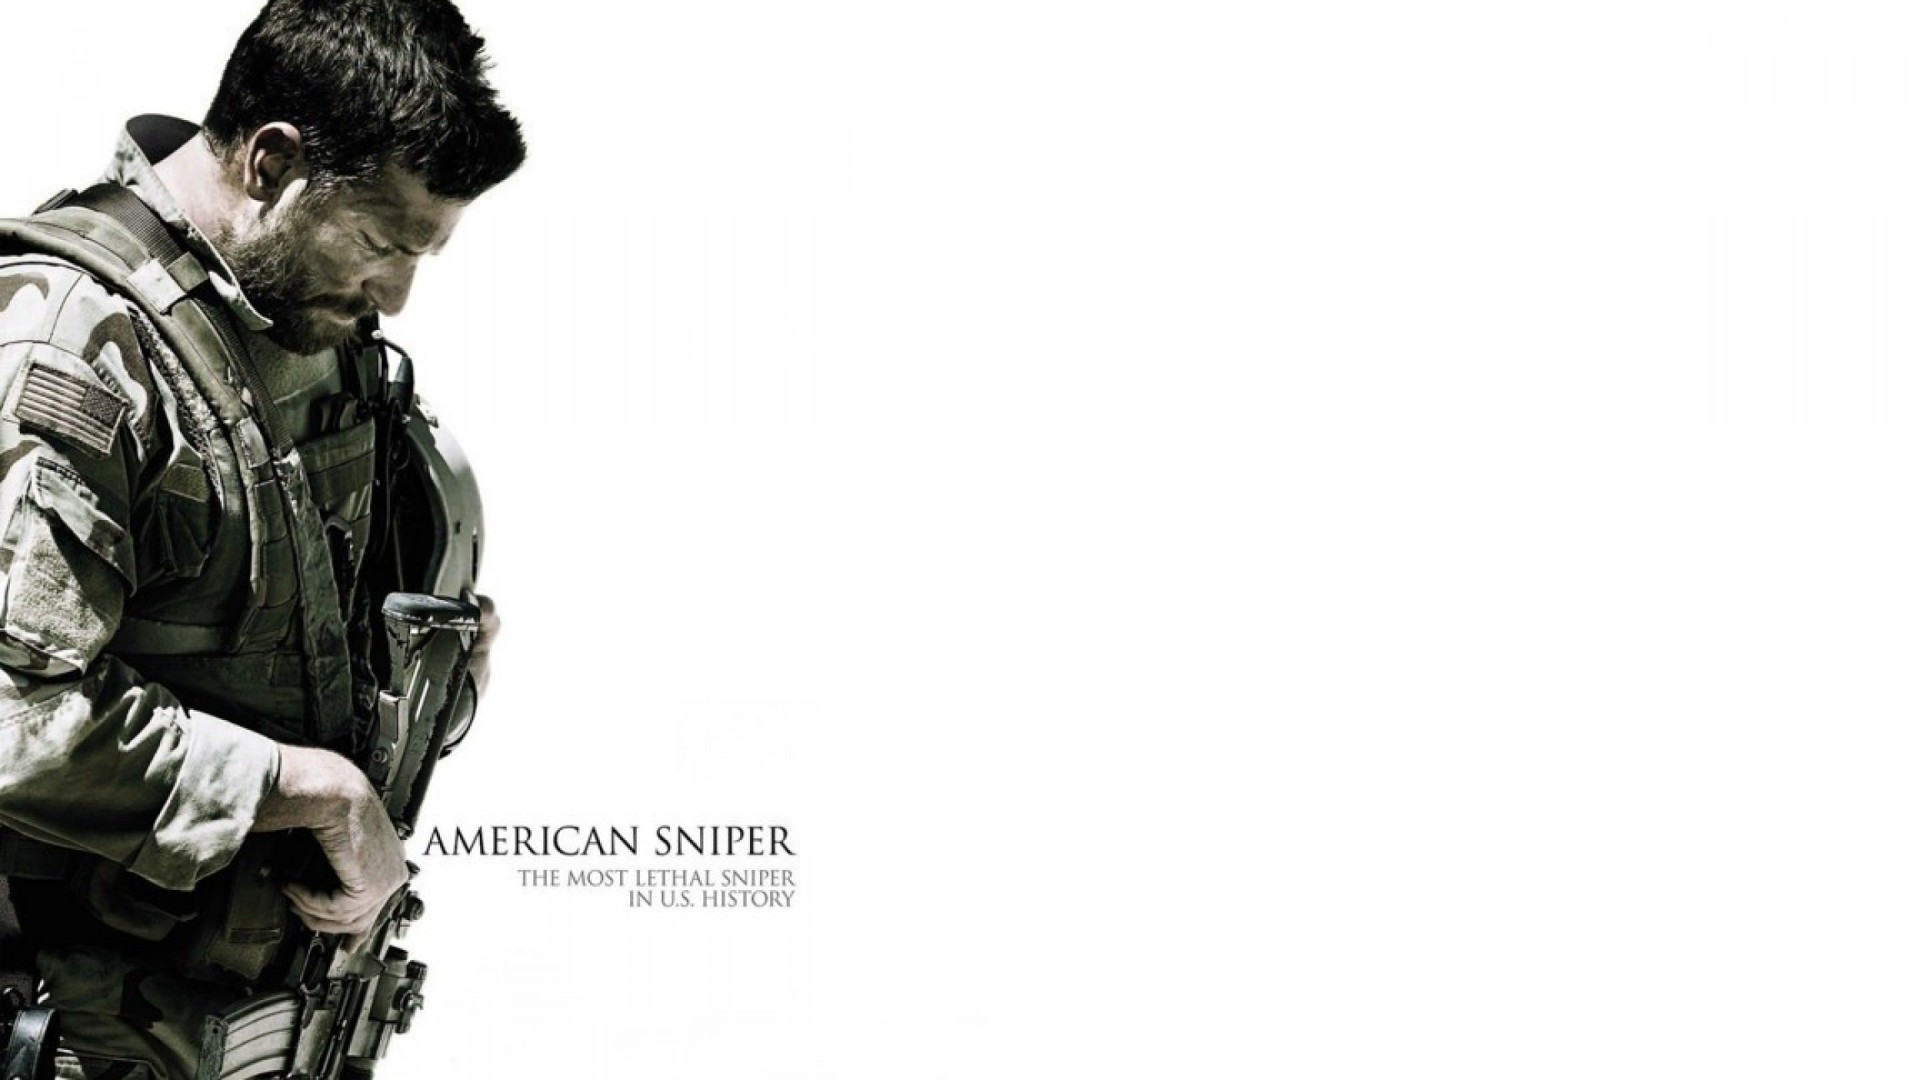 Bradley Cooper As Chris Kyle in American sniper Wallpaper for Desktop 1920x1080